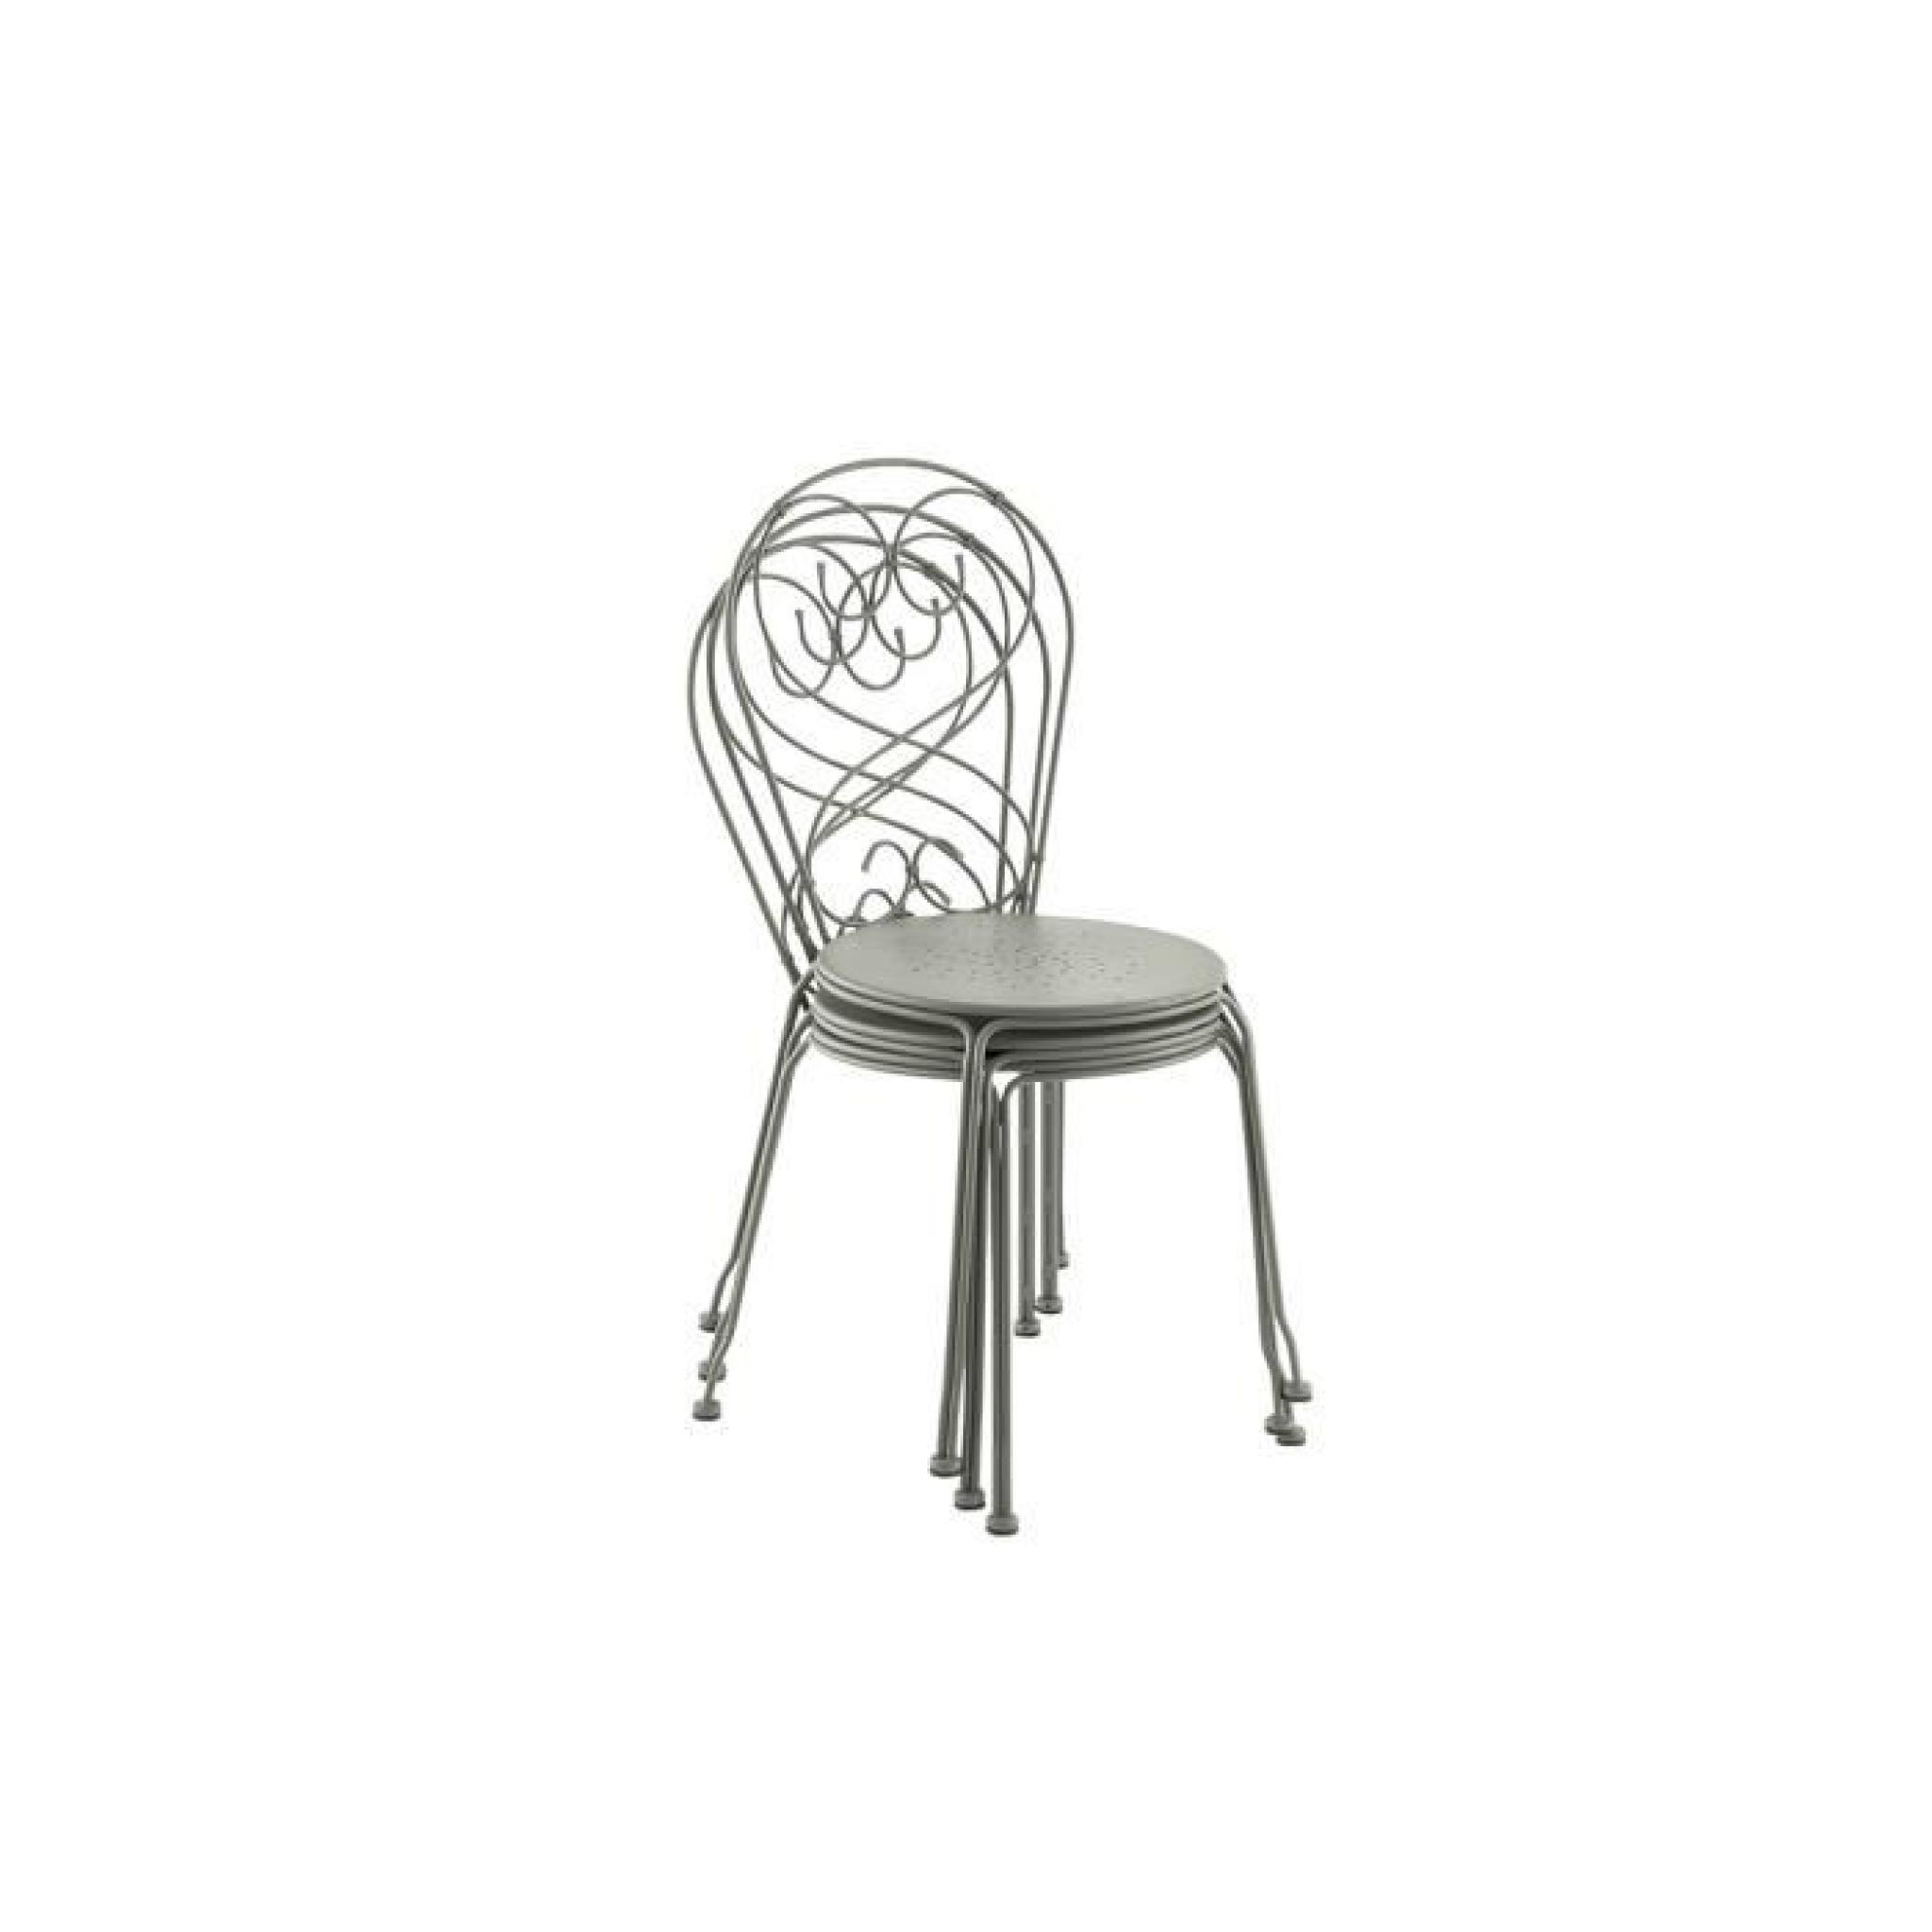 46 89 Cm Empilable Galet51 Pauline Chaise X A5j4RL